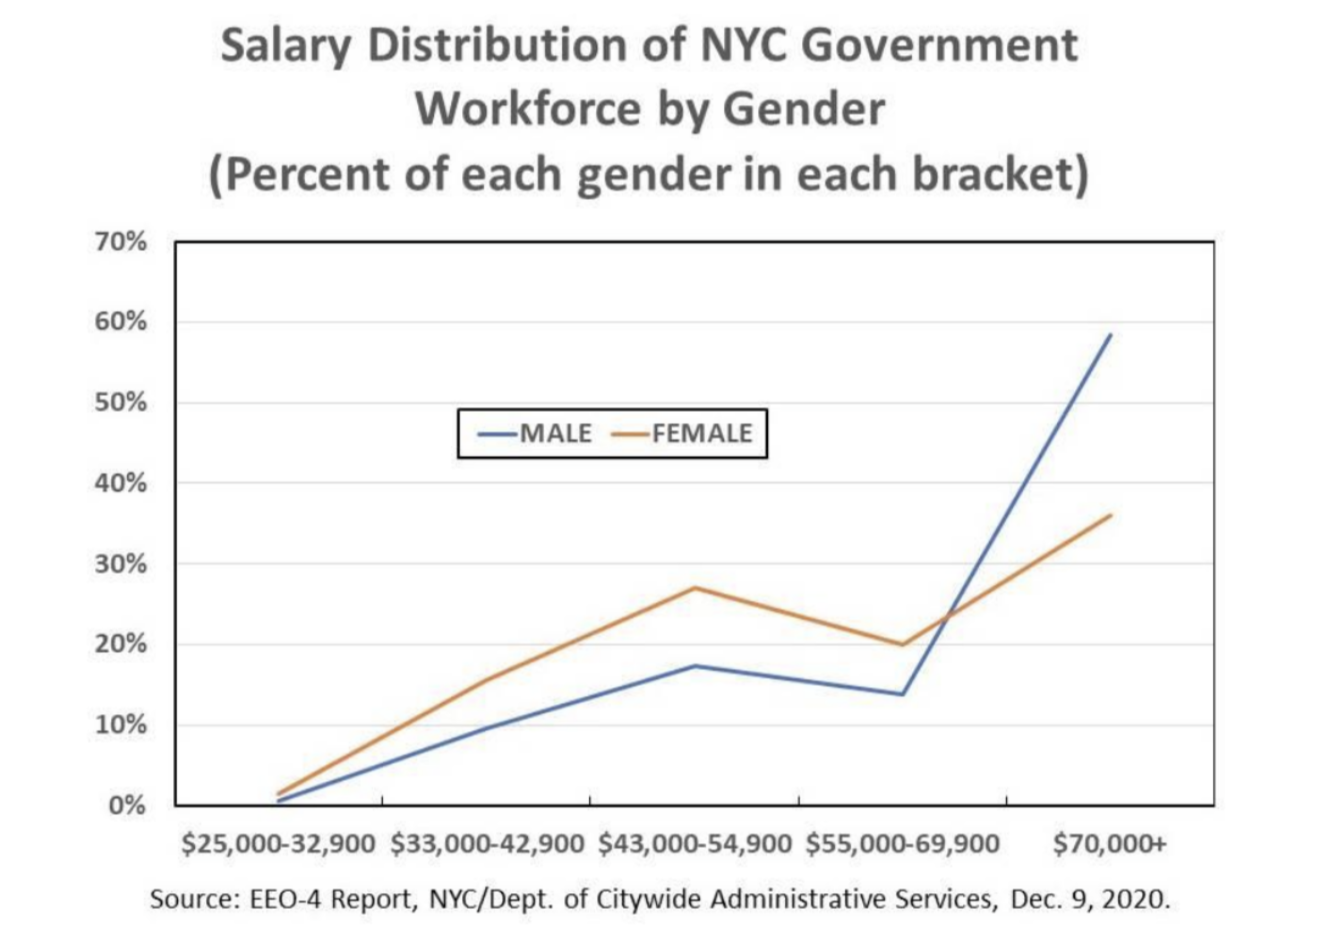 Graph illustrating Salary Distribution of NYC Government Workforce by Gender